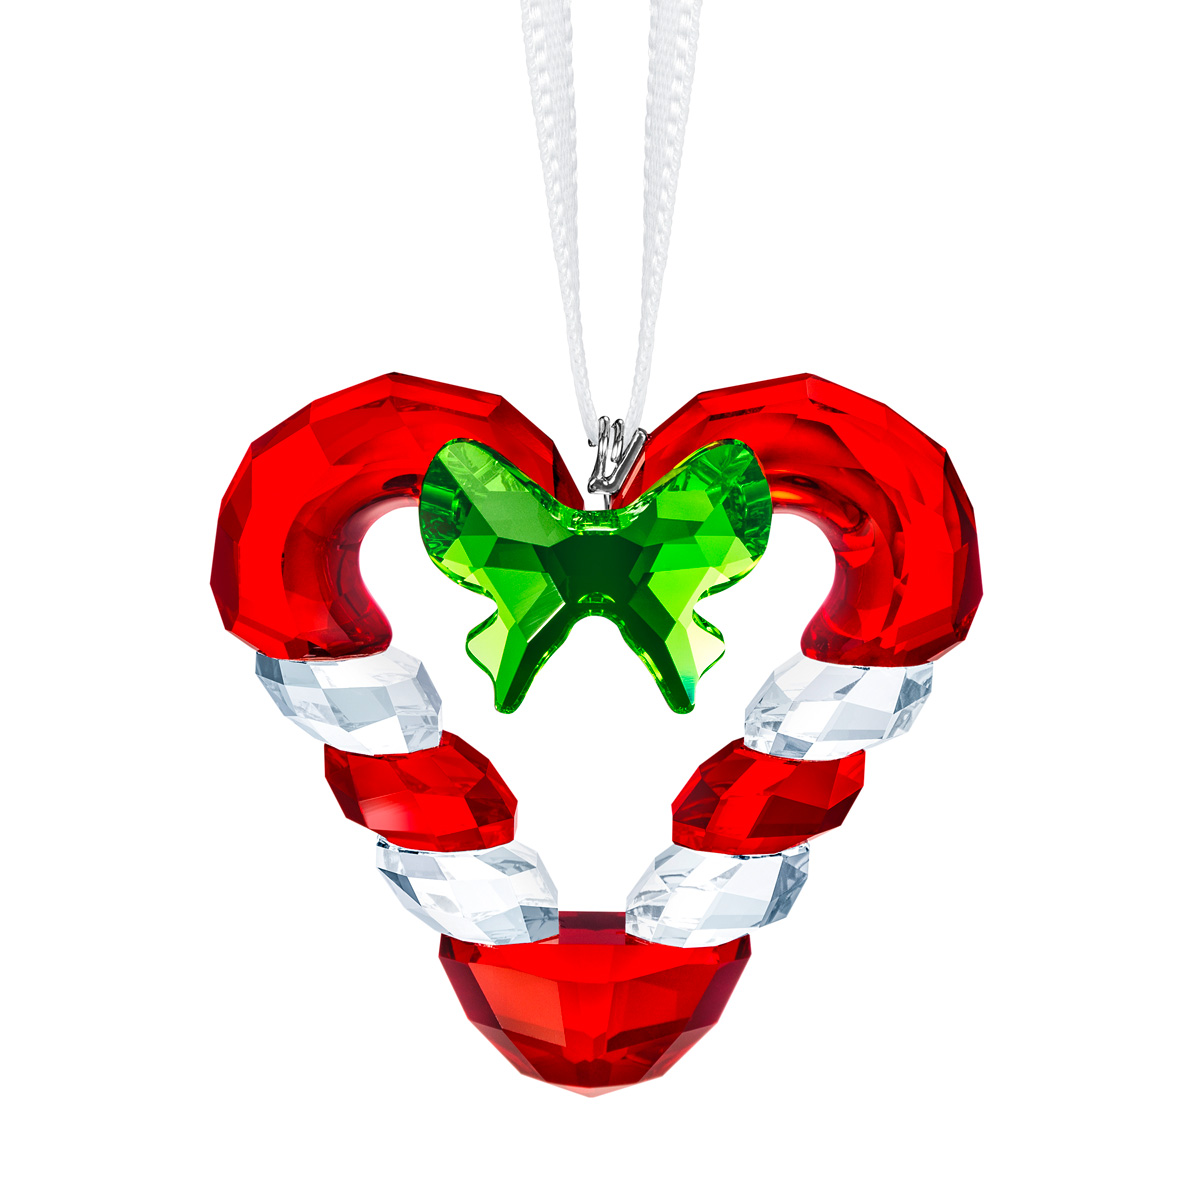 Swarovski Candy Cane Heart Ornament